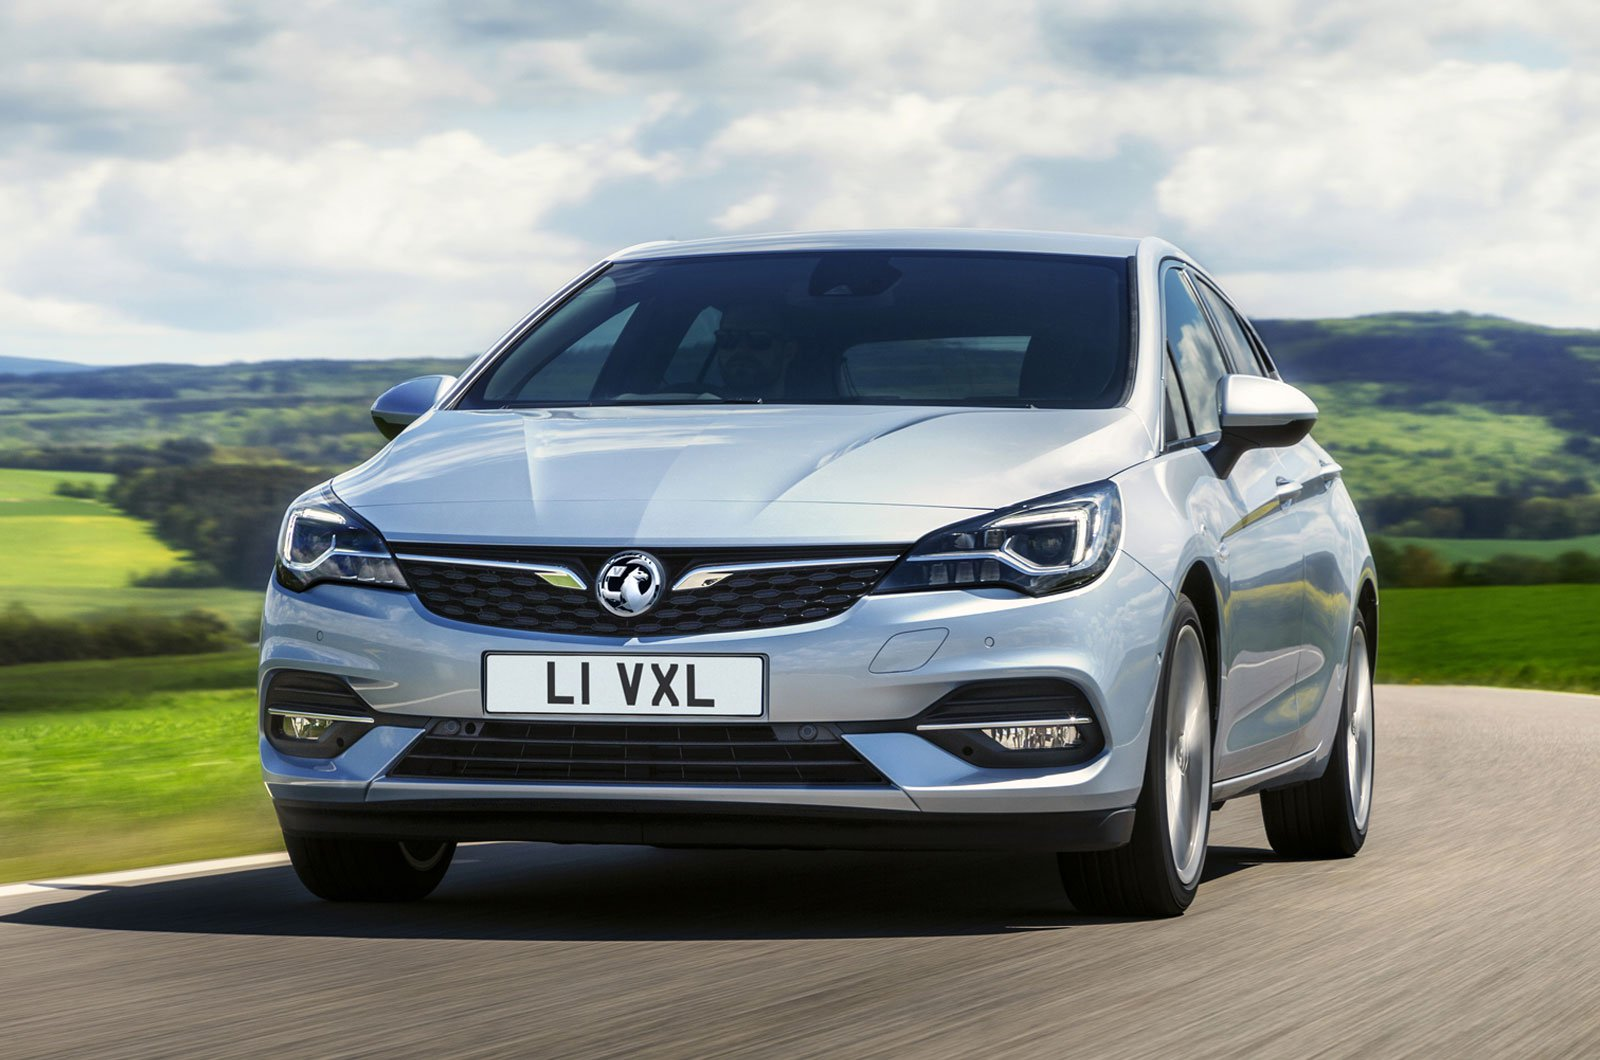 2019 Vauxhall Astra front